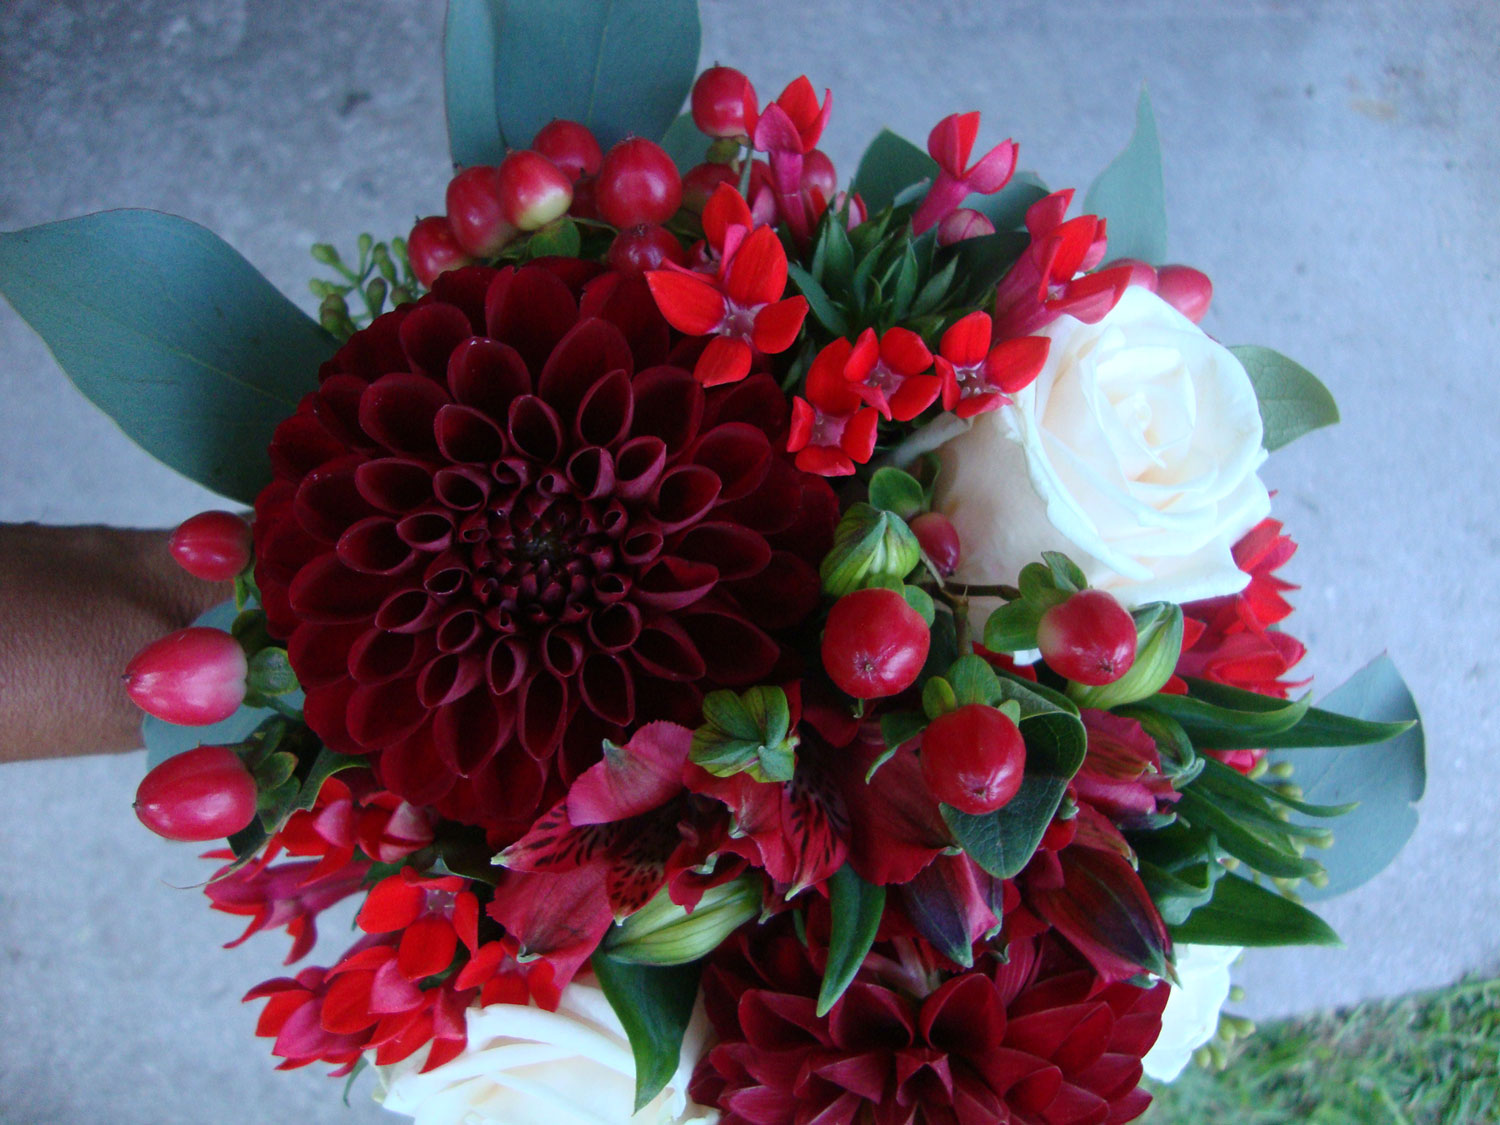 Flower bouquet created by the floral designer Giuseppina Comoli